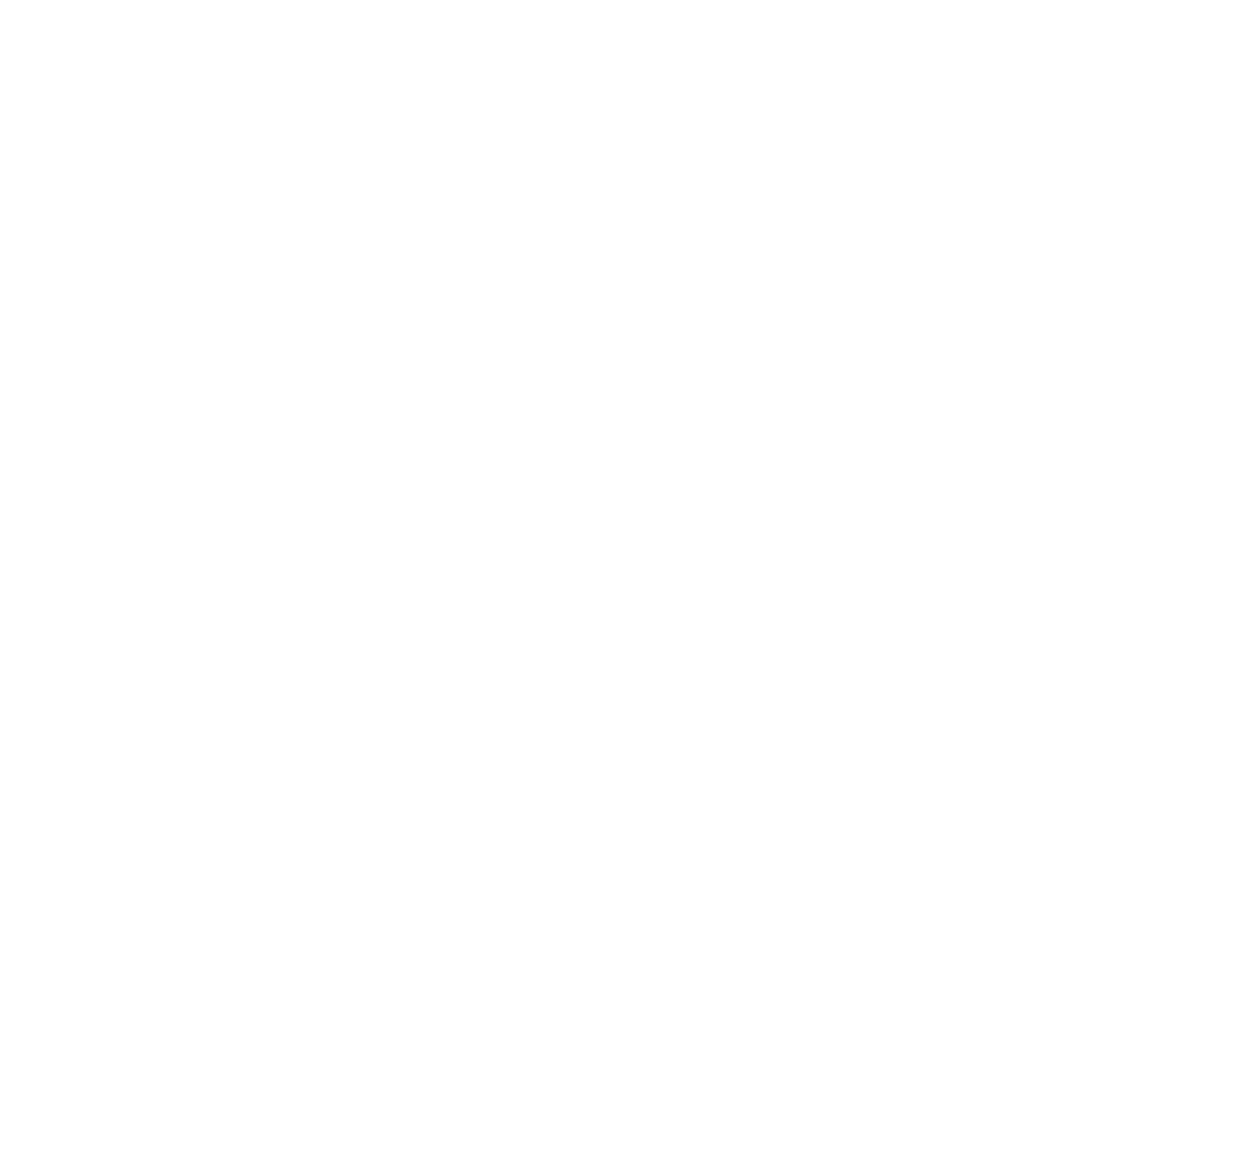 Haute Route Nation logo